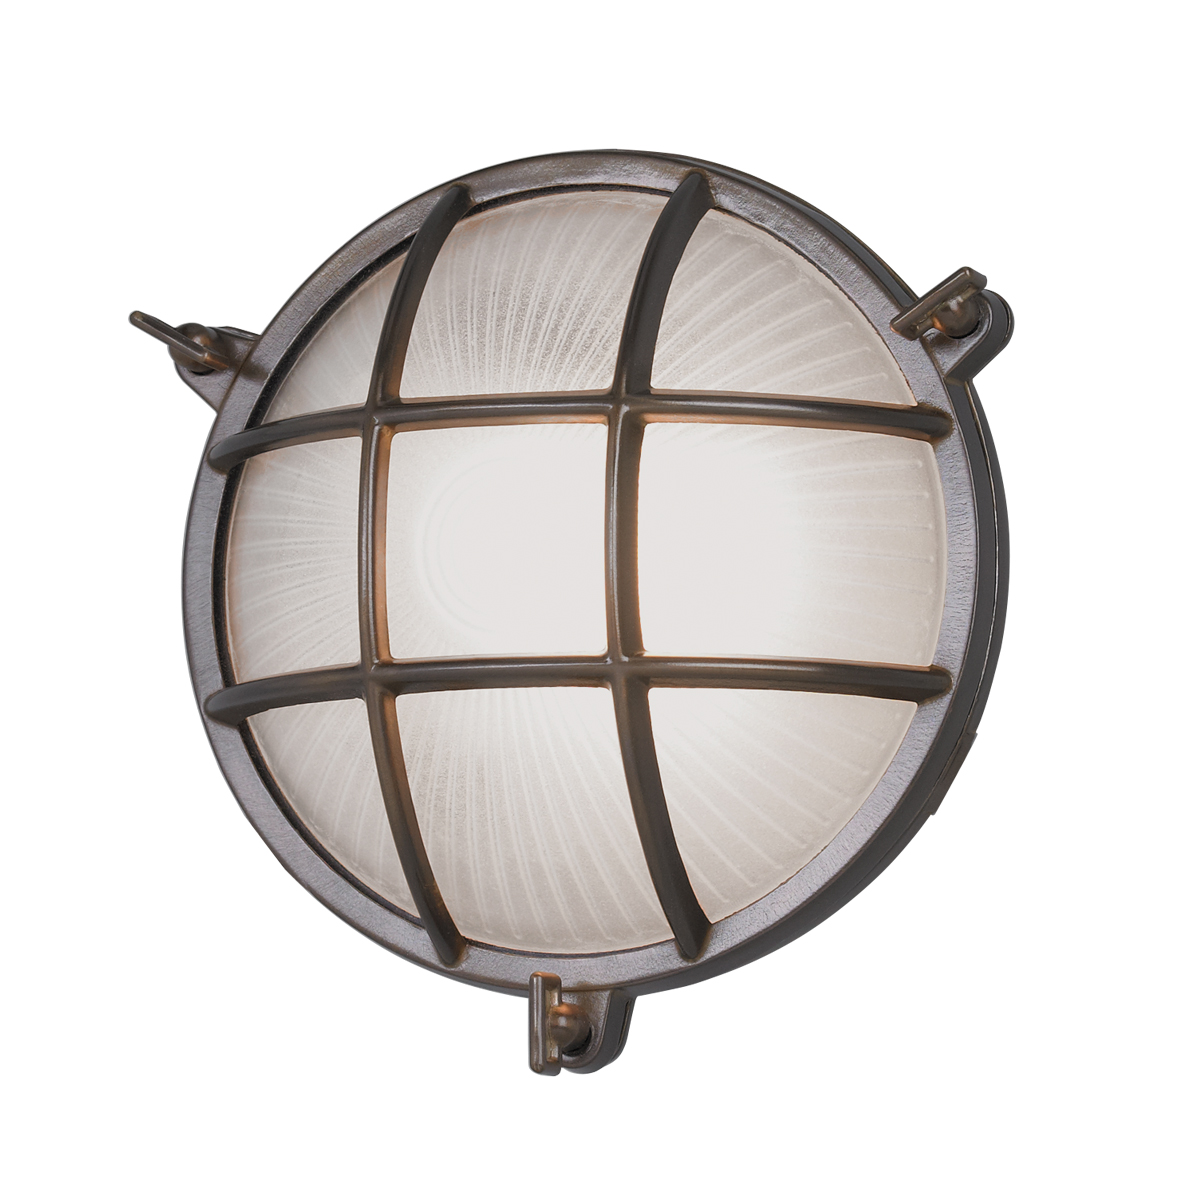 Mariner Round Outdoor Wall Light By Norwell Lighting 1102 Br Fr